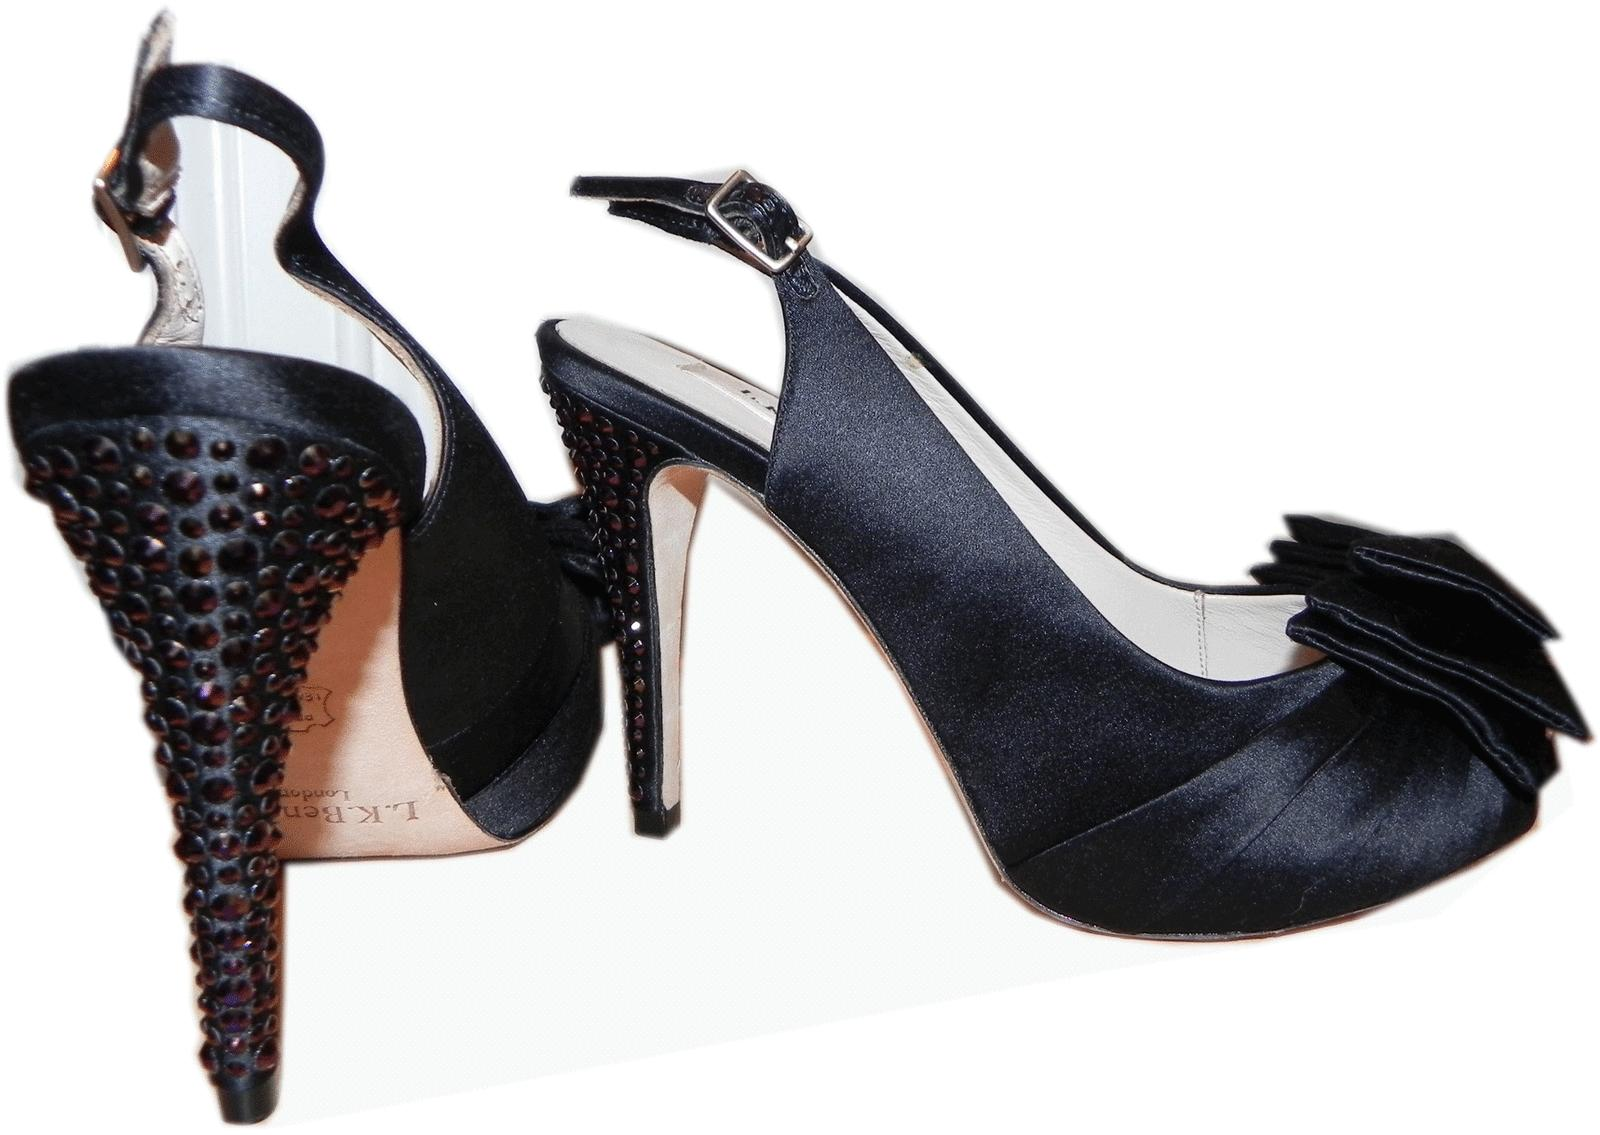 $445 L.k. Bennett Black Satin Bow Crystals Pump Slingback Red Carpet Shoe 8- 39